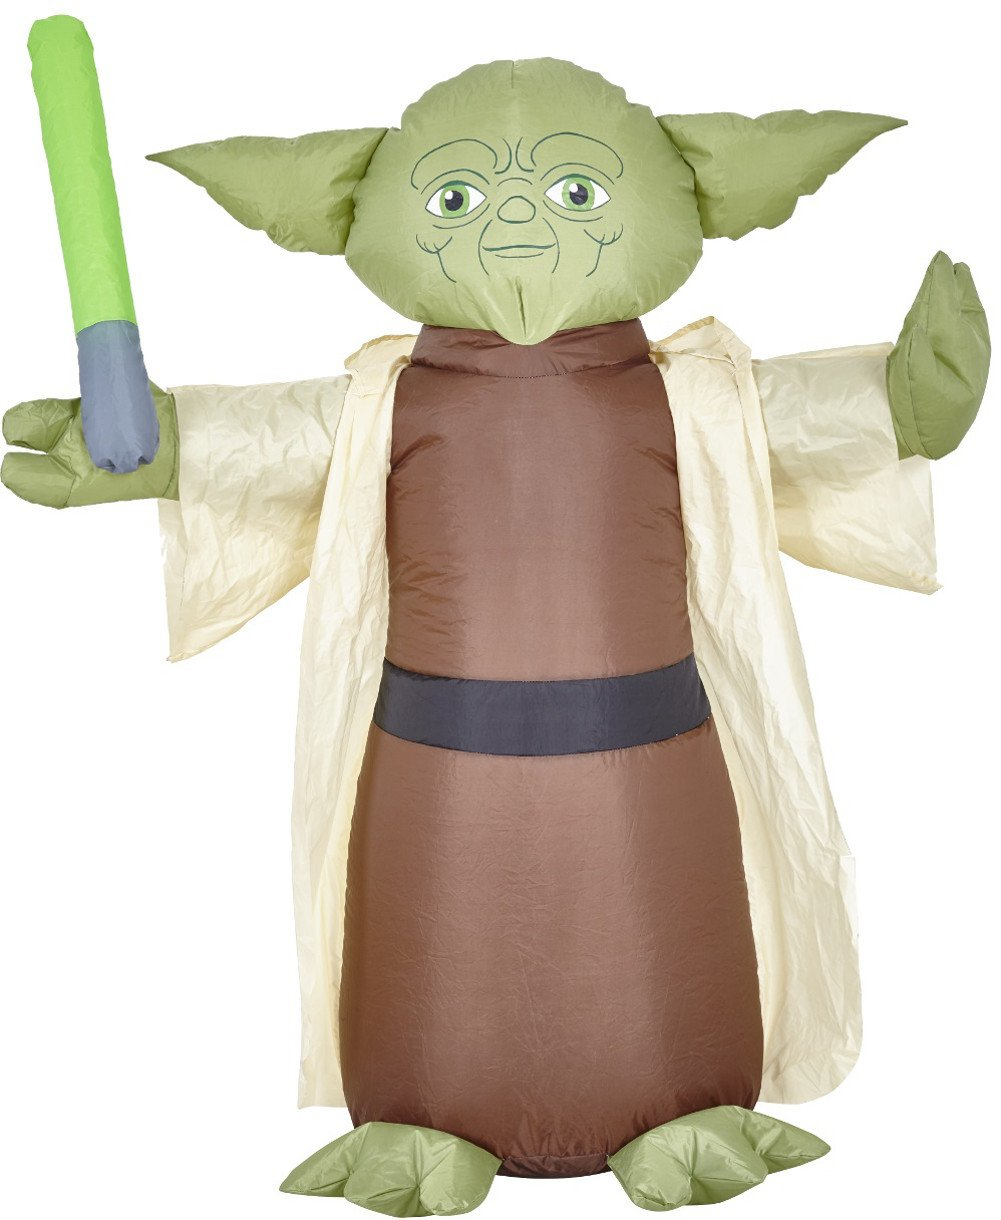 Morbid Enterprises Star Wars Yoda Lawn Inflatable, Green/Brown/Tan/Black, One Size